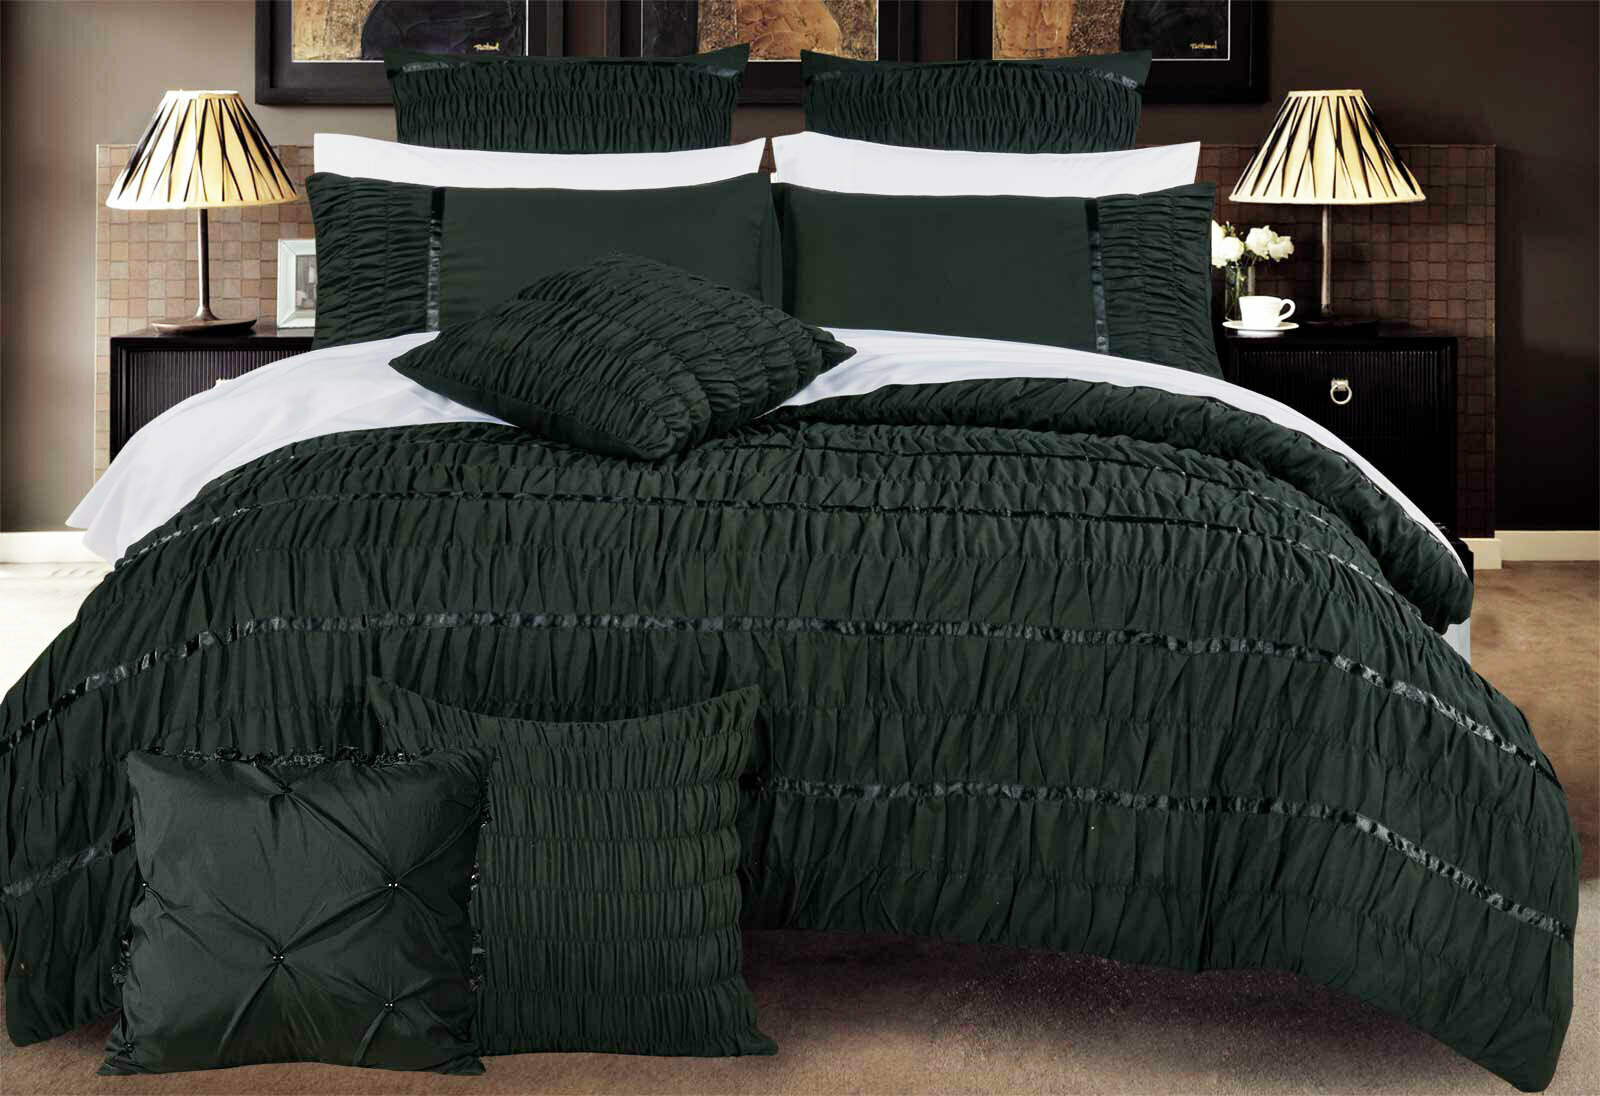 King Size Black Horizontal Cross Weave Quilt Cover Set (3PCS)